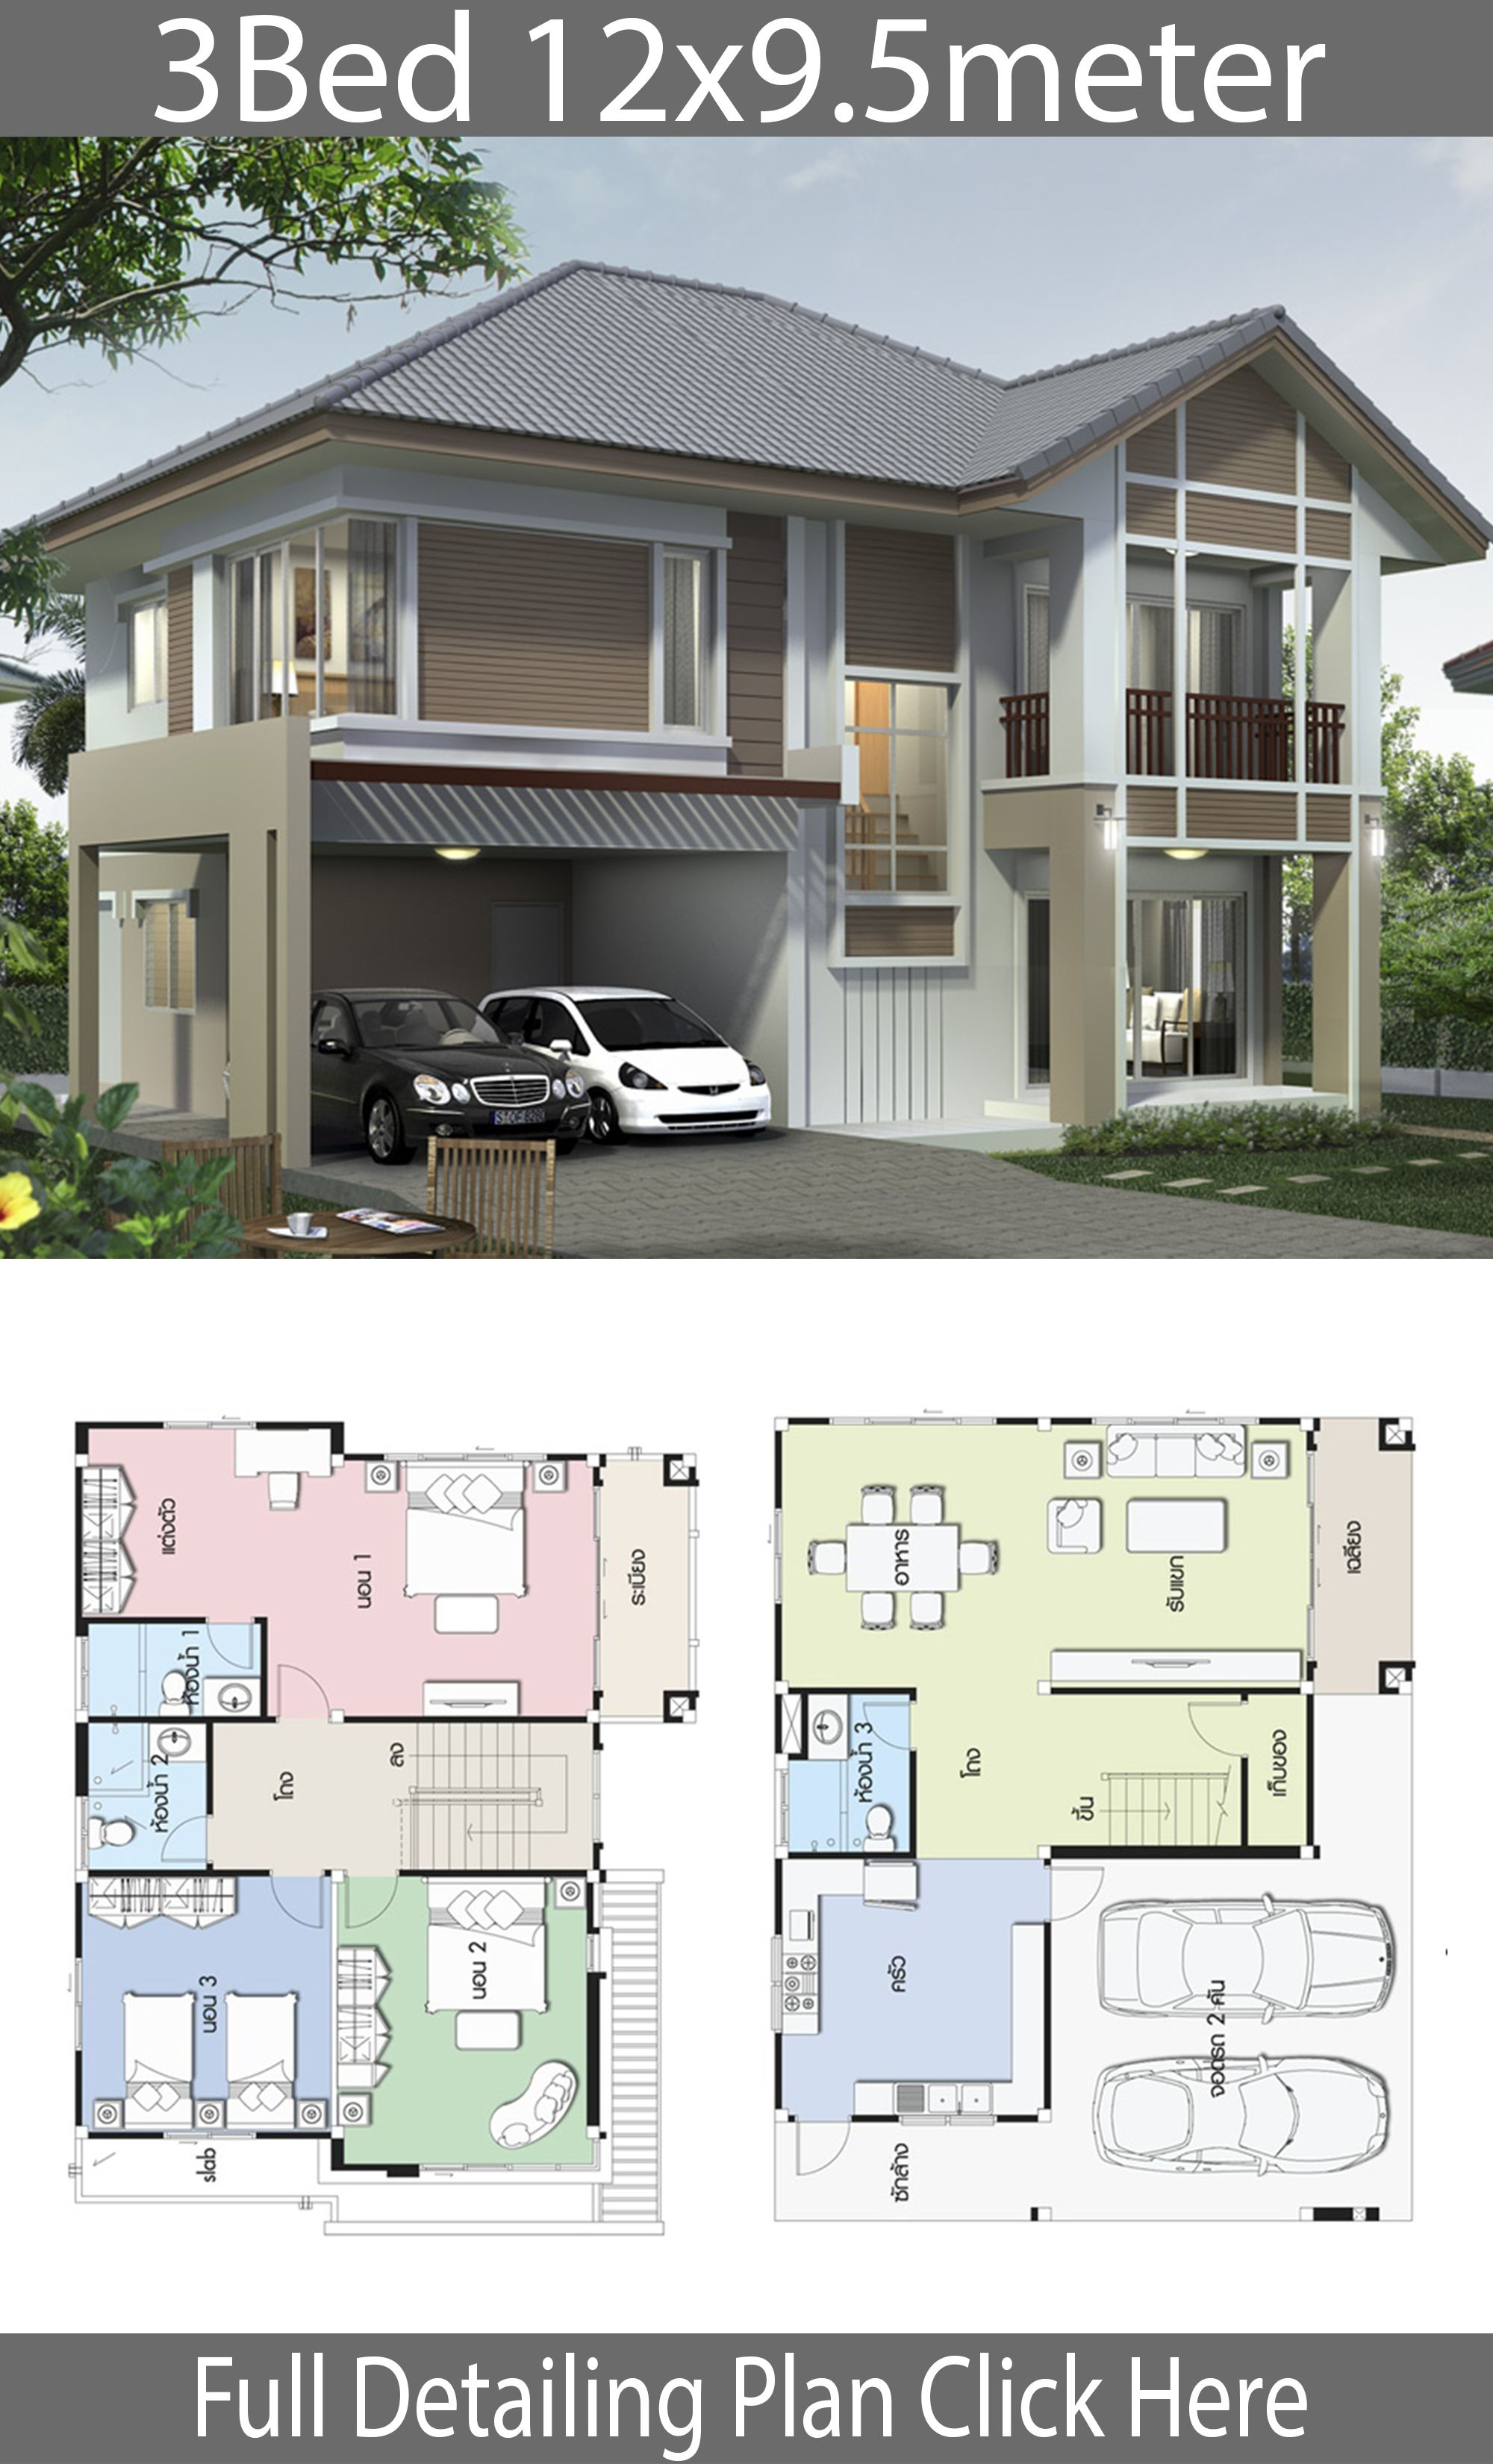 Home Design Plan 12x9 5m With 3 Bedrooms House Idea In 2020 Home Design Plan House Design House Plans